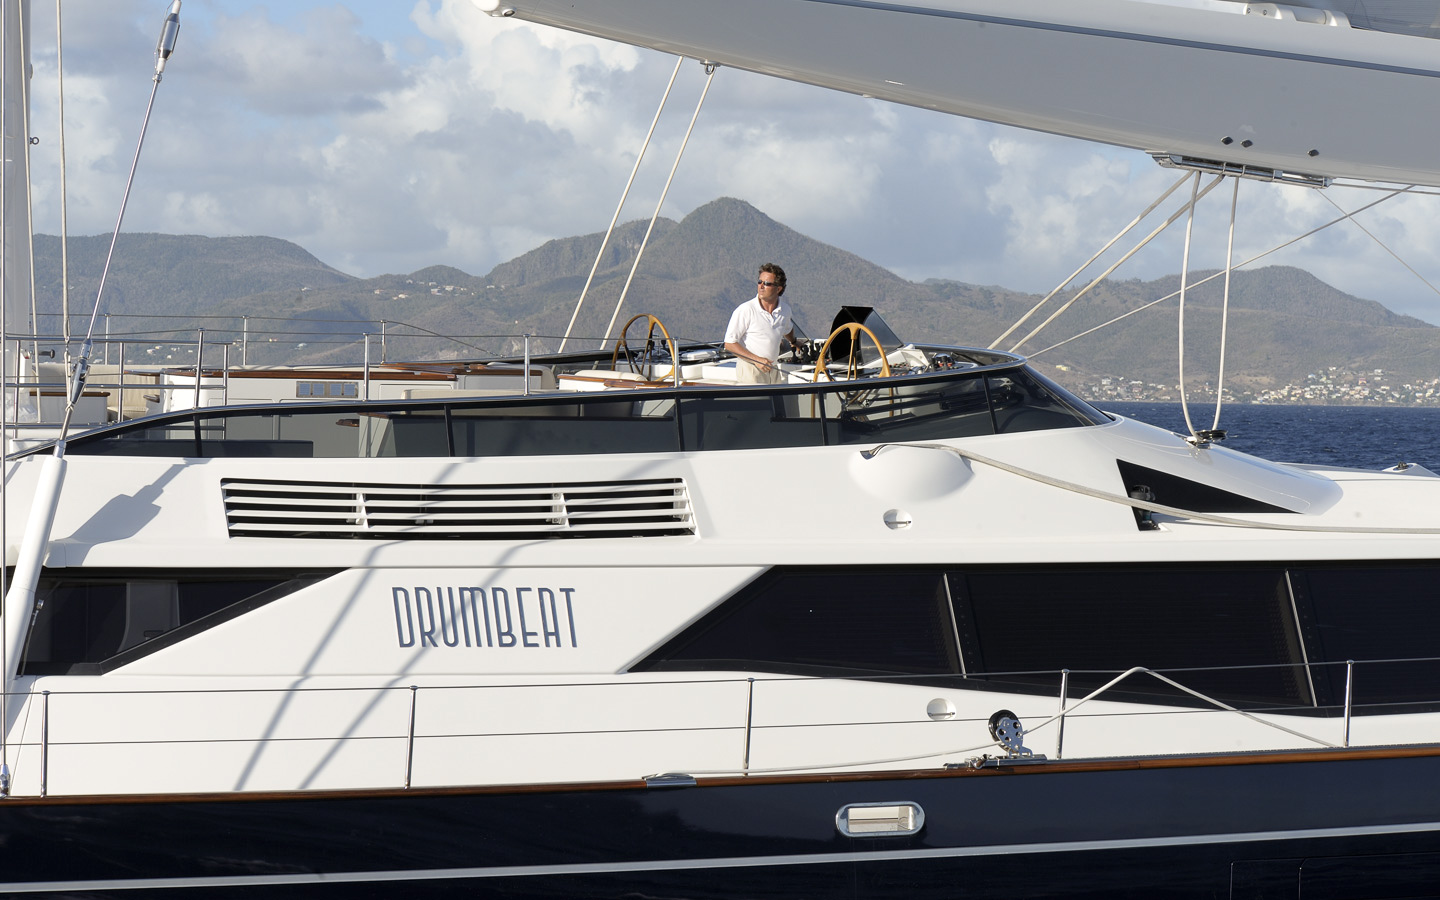 Yacht DRUMBEAT - Alloy Yachts - Sailing Flybridge